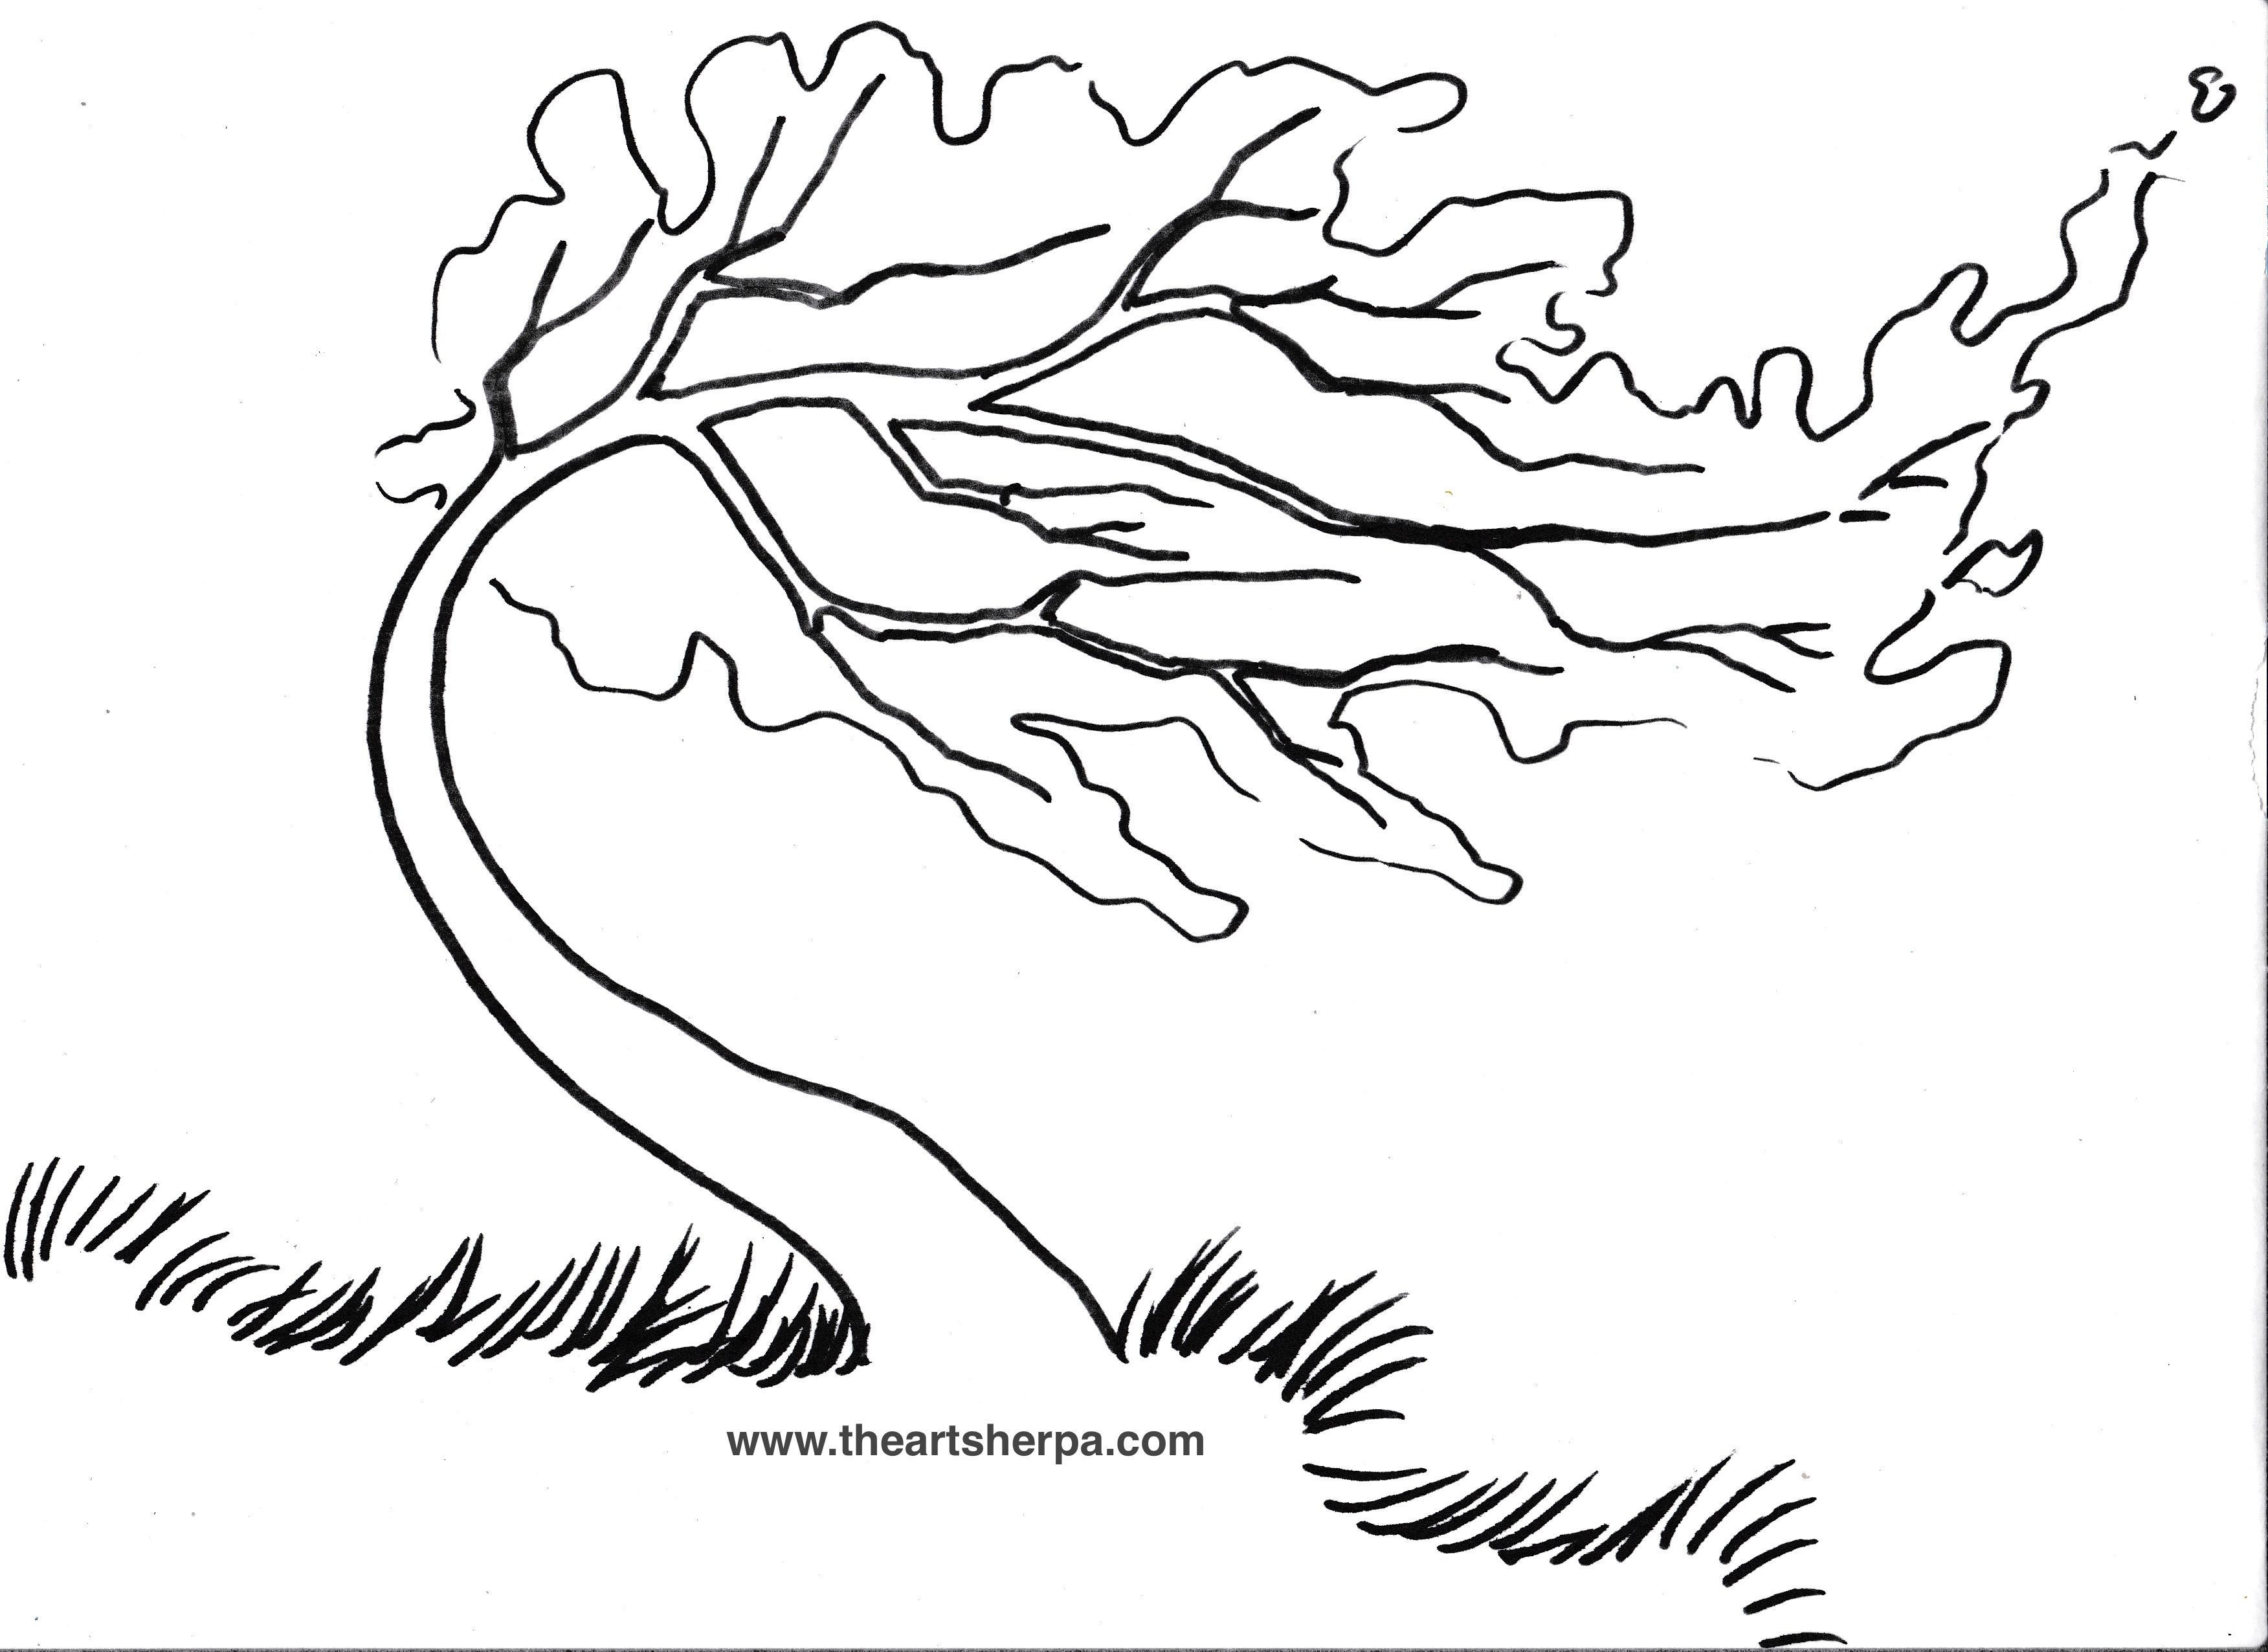 Trace Able For The Rainbow Willow Tree On Youtube With The